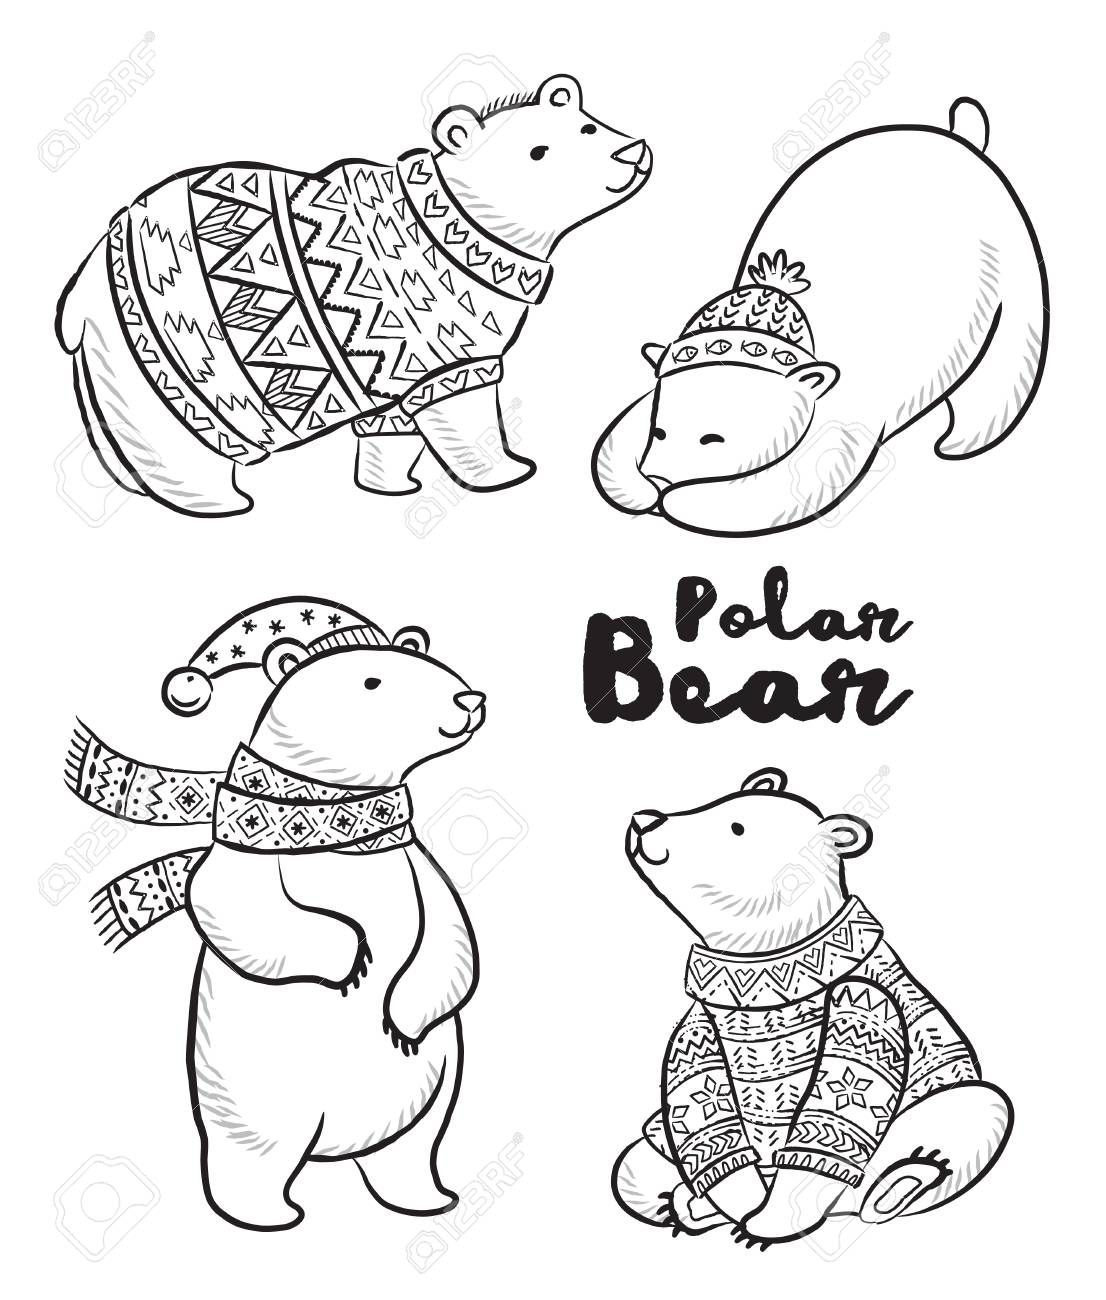 Top 10 Free Printable Polar Bear Coloring Pages Online | 1300x1106